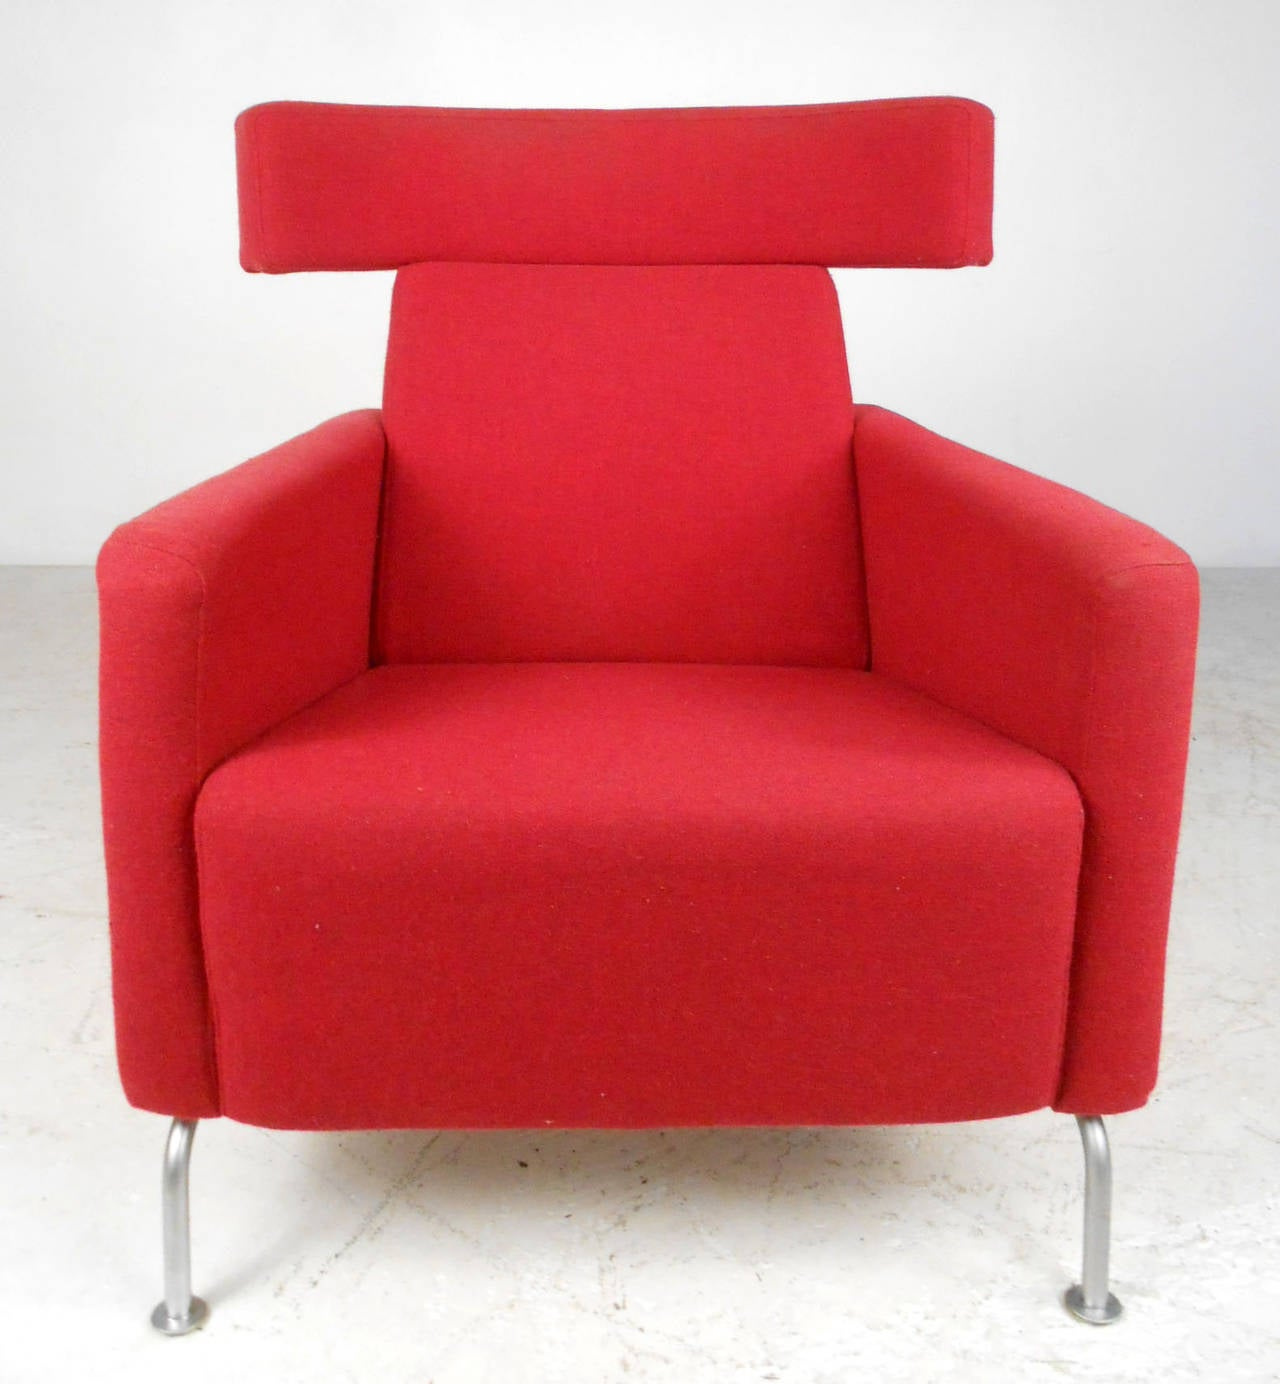 Mid Century Modern Wegner Style Danish Lounge Chair With Ottoman For Sale at